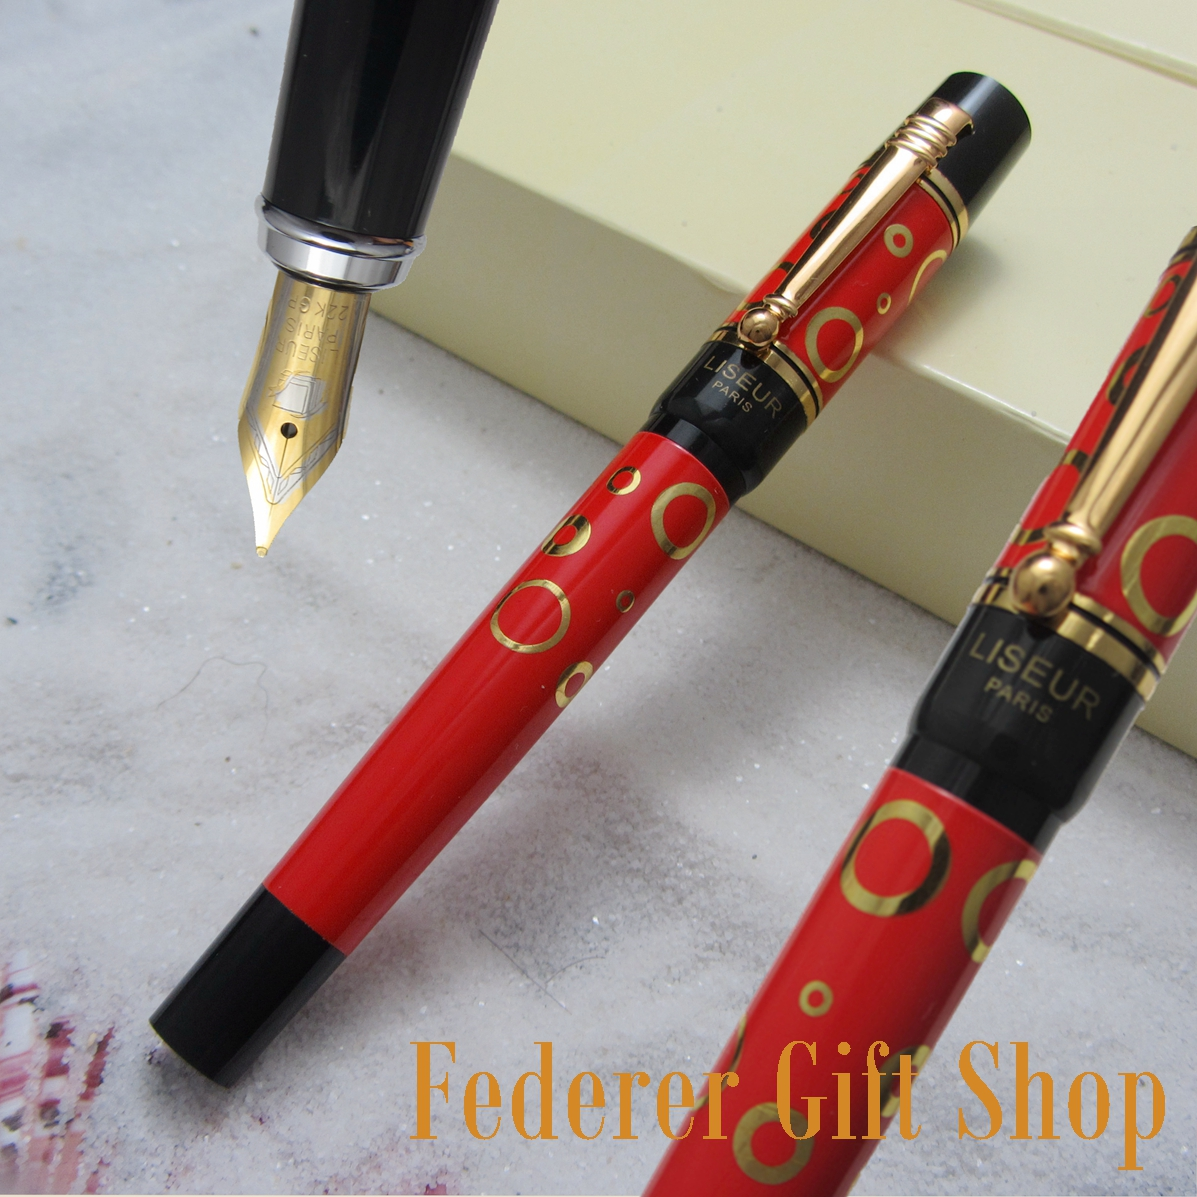 LISEUR L601 fashion Gold Circle pattern Fountain pen F nib Business gift ink pen and Original boxLISEUR L601 fashion Gold Circle pattern Fountain pen F nib Business gift ink pen and Original box